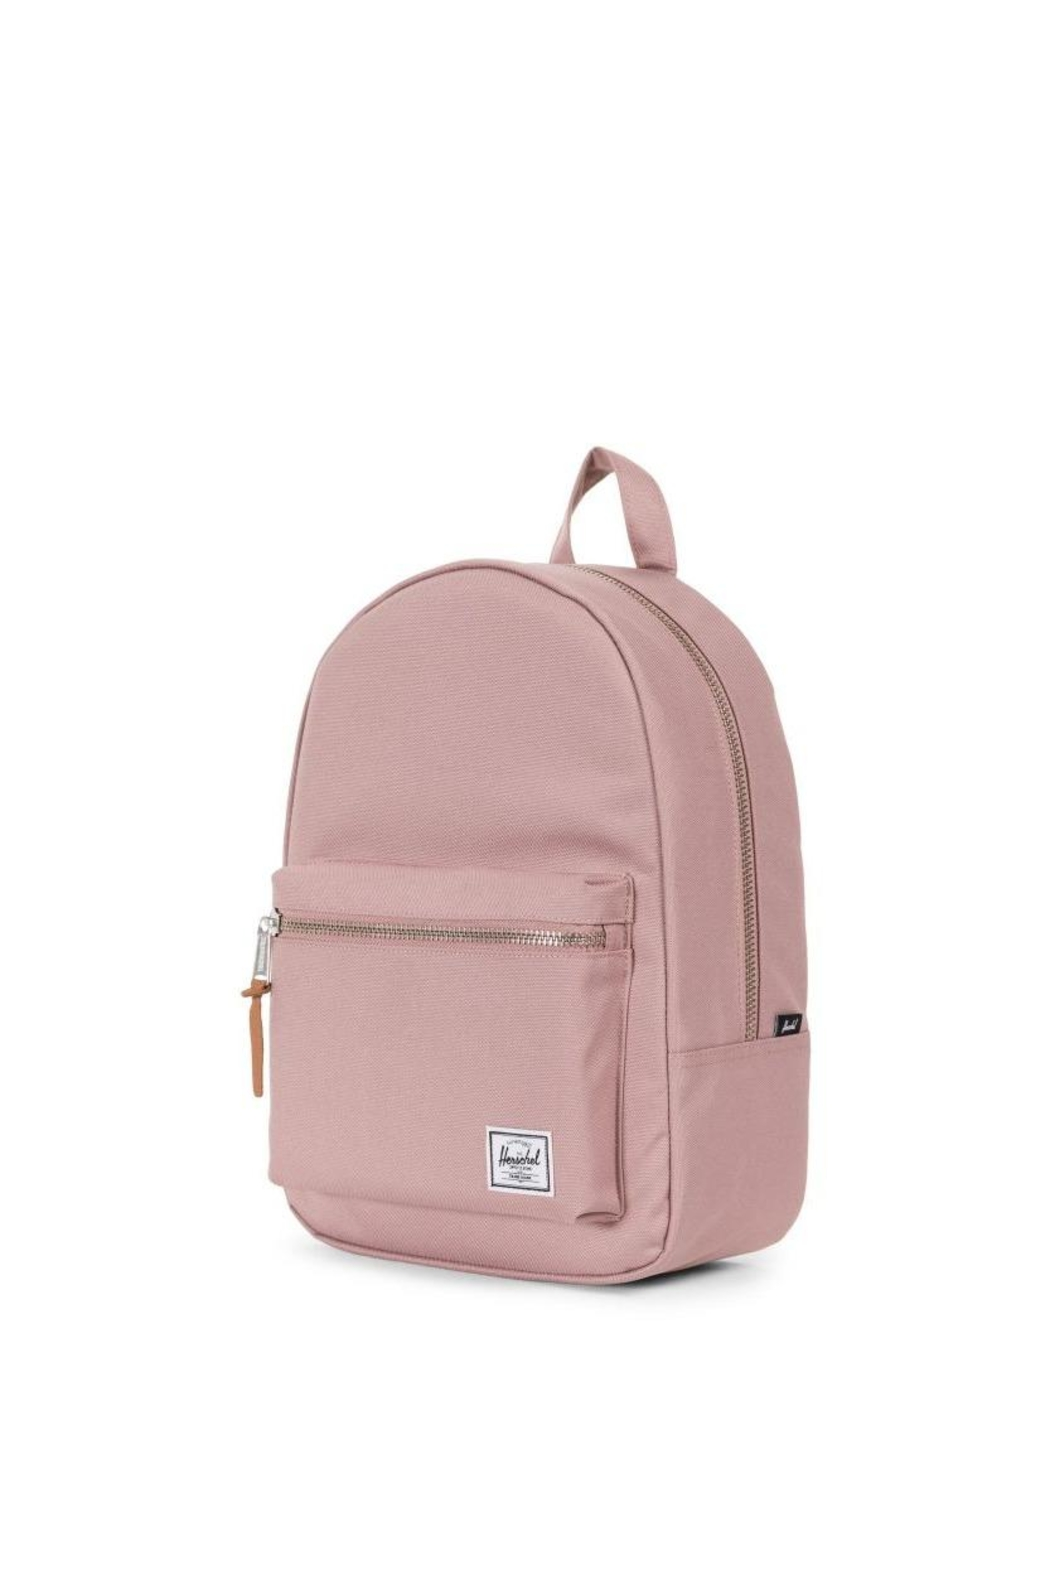 Herschel Supply Co. Small Pink Backpack - Side Cropped Image